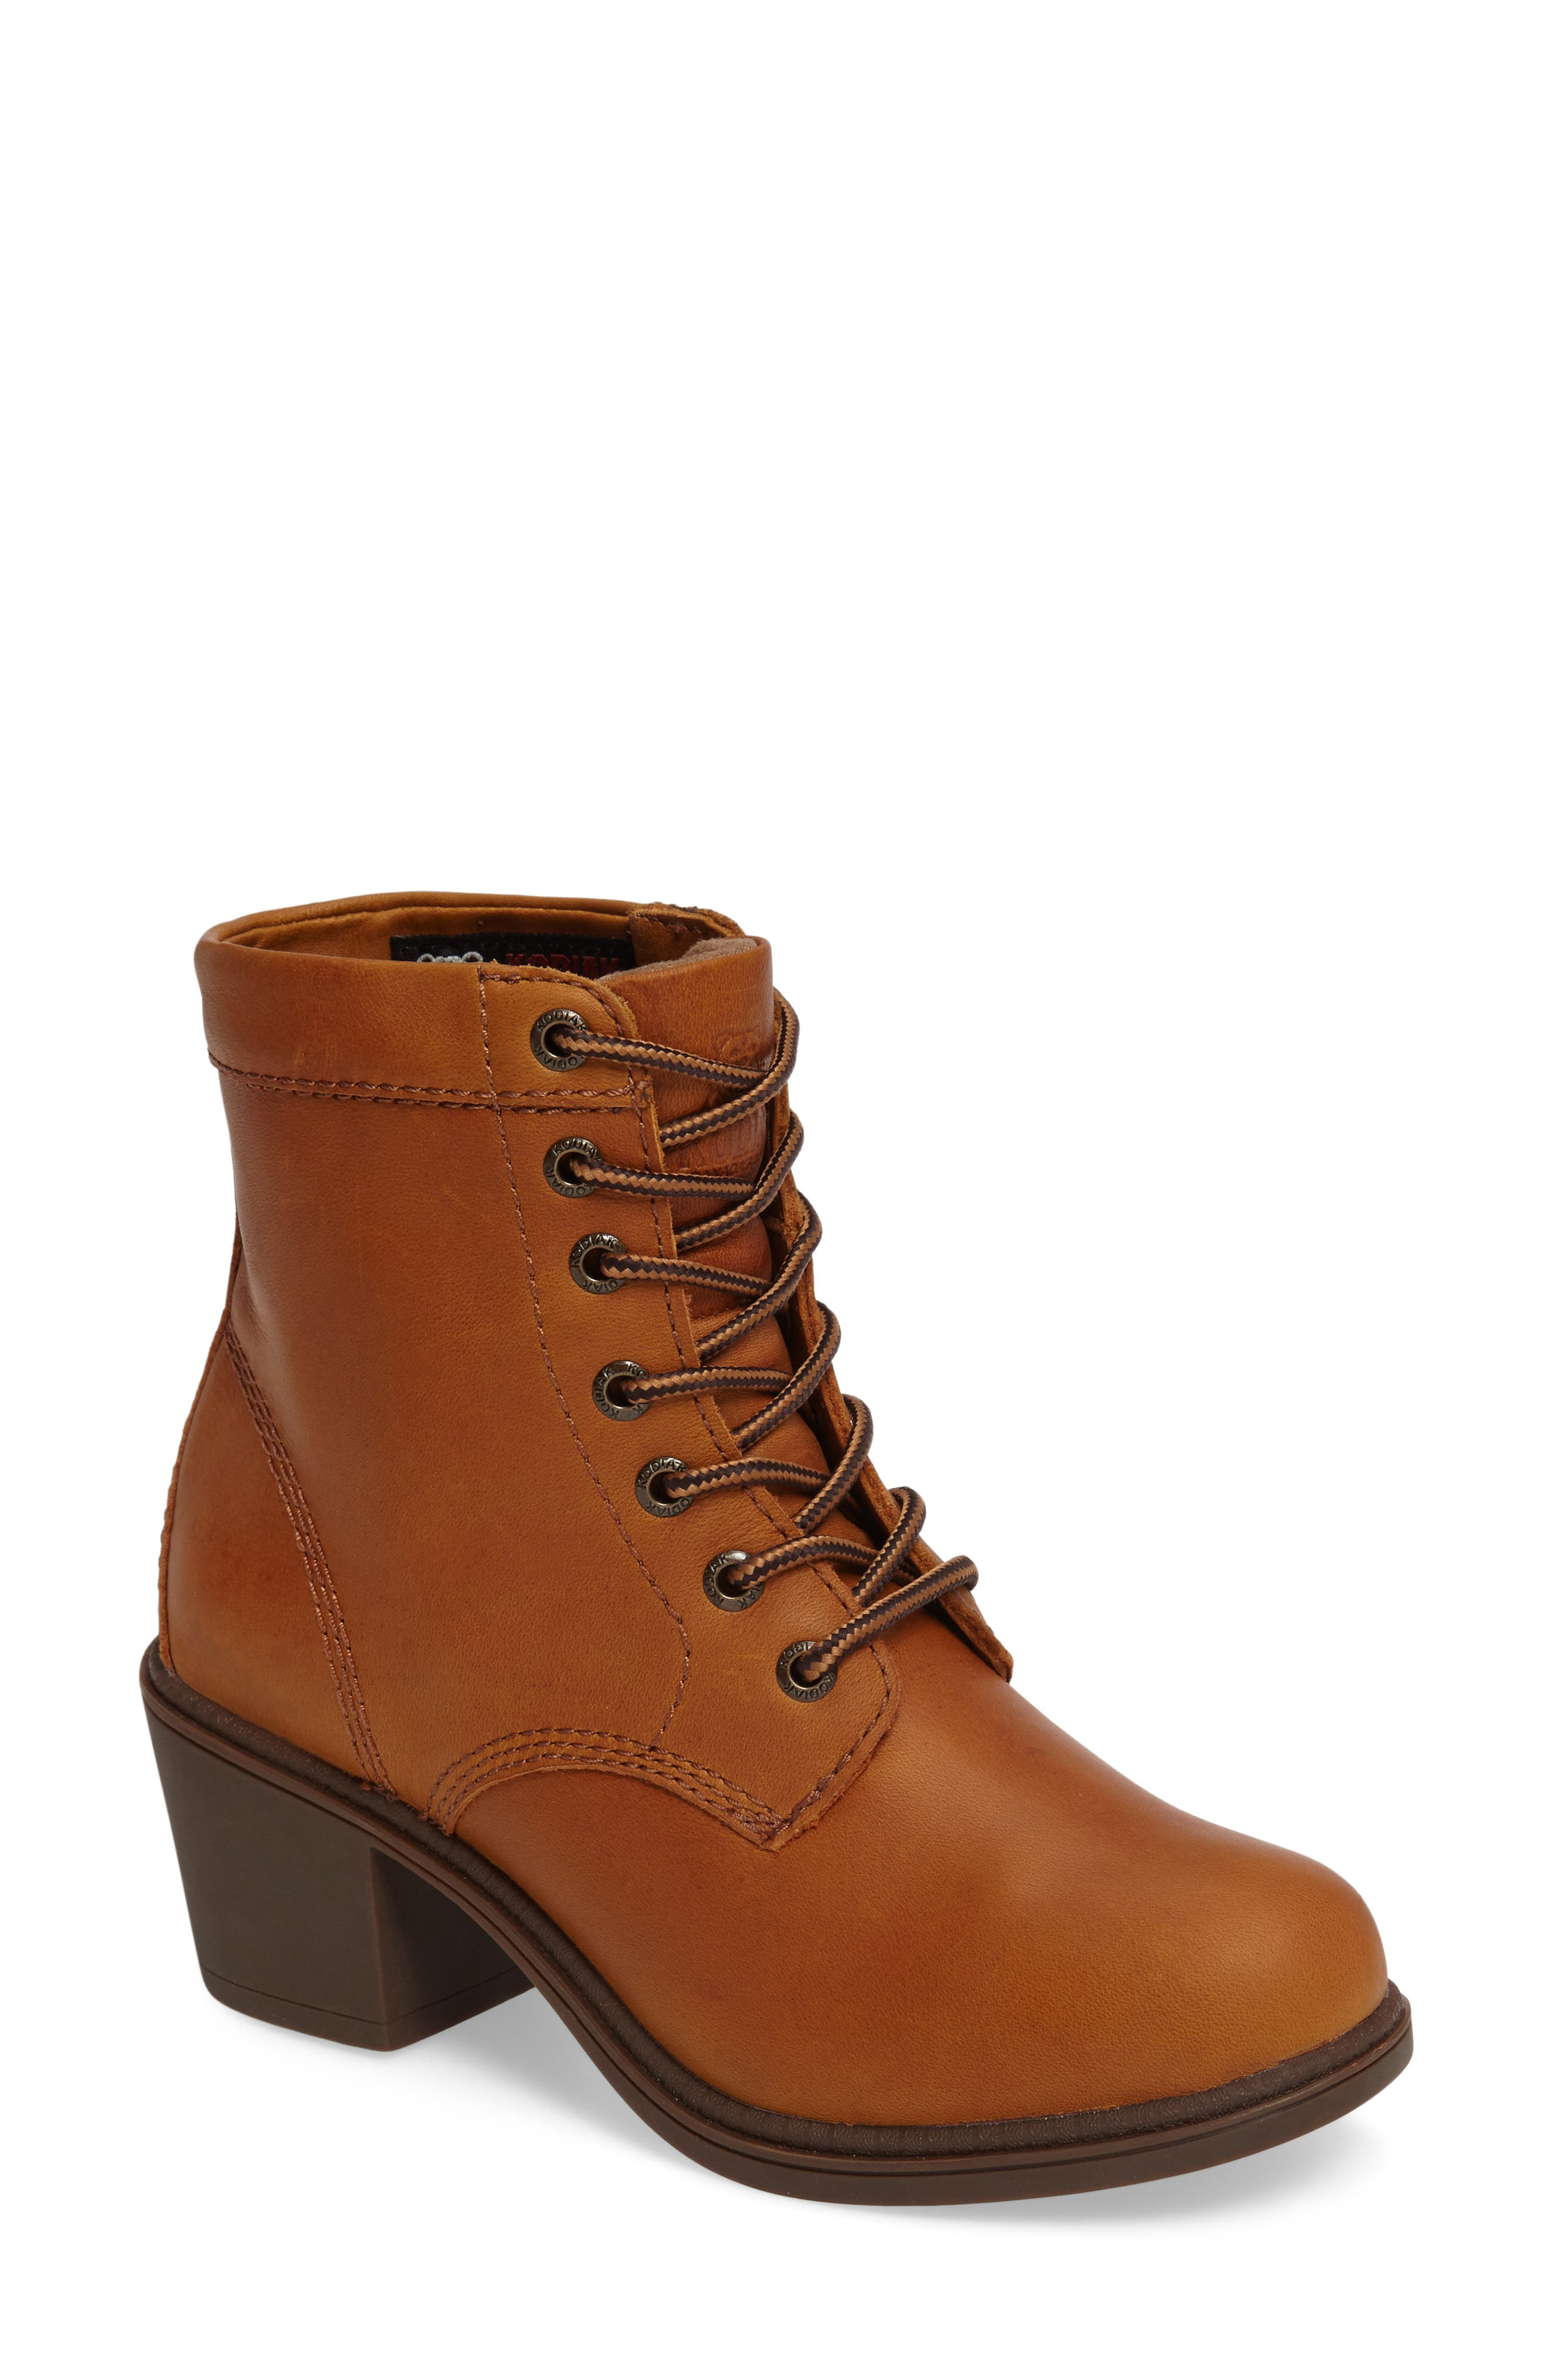 Claire Waterproof Bootie,                             Main thumbnail 1, color,                             Caramel Leather